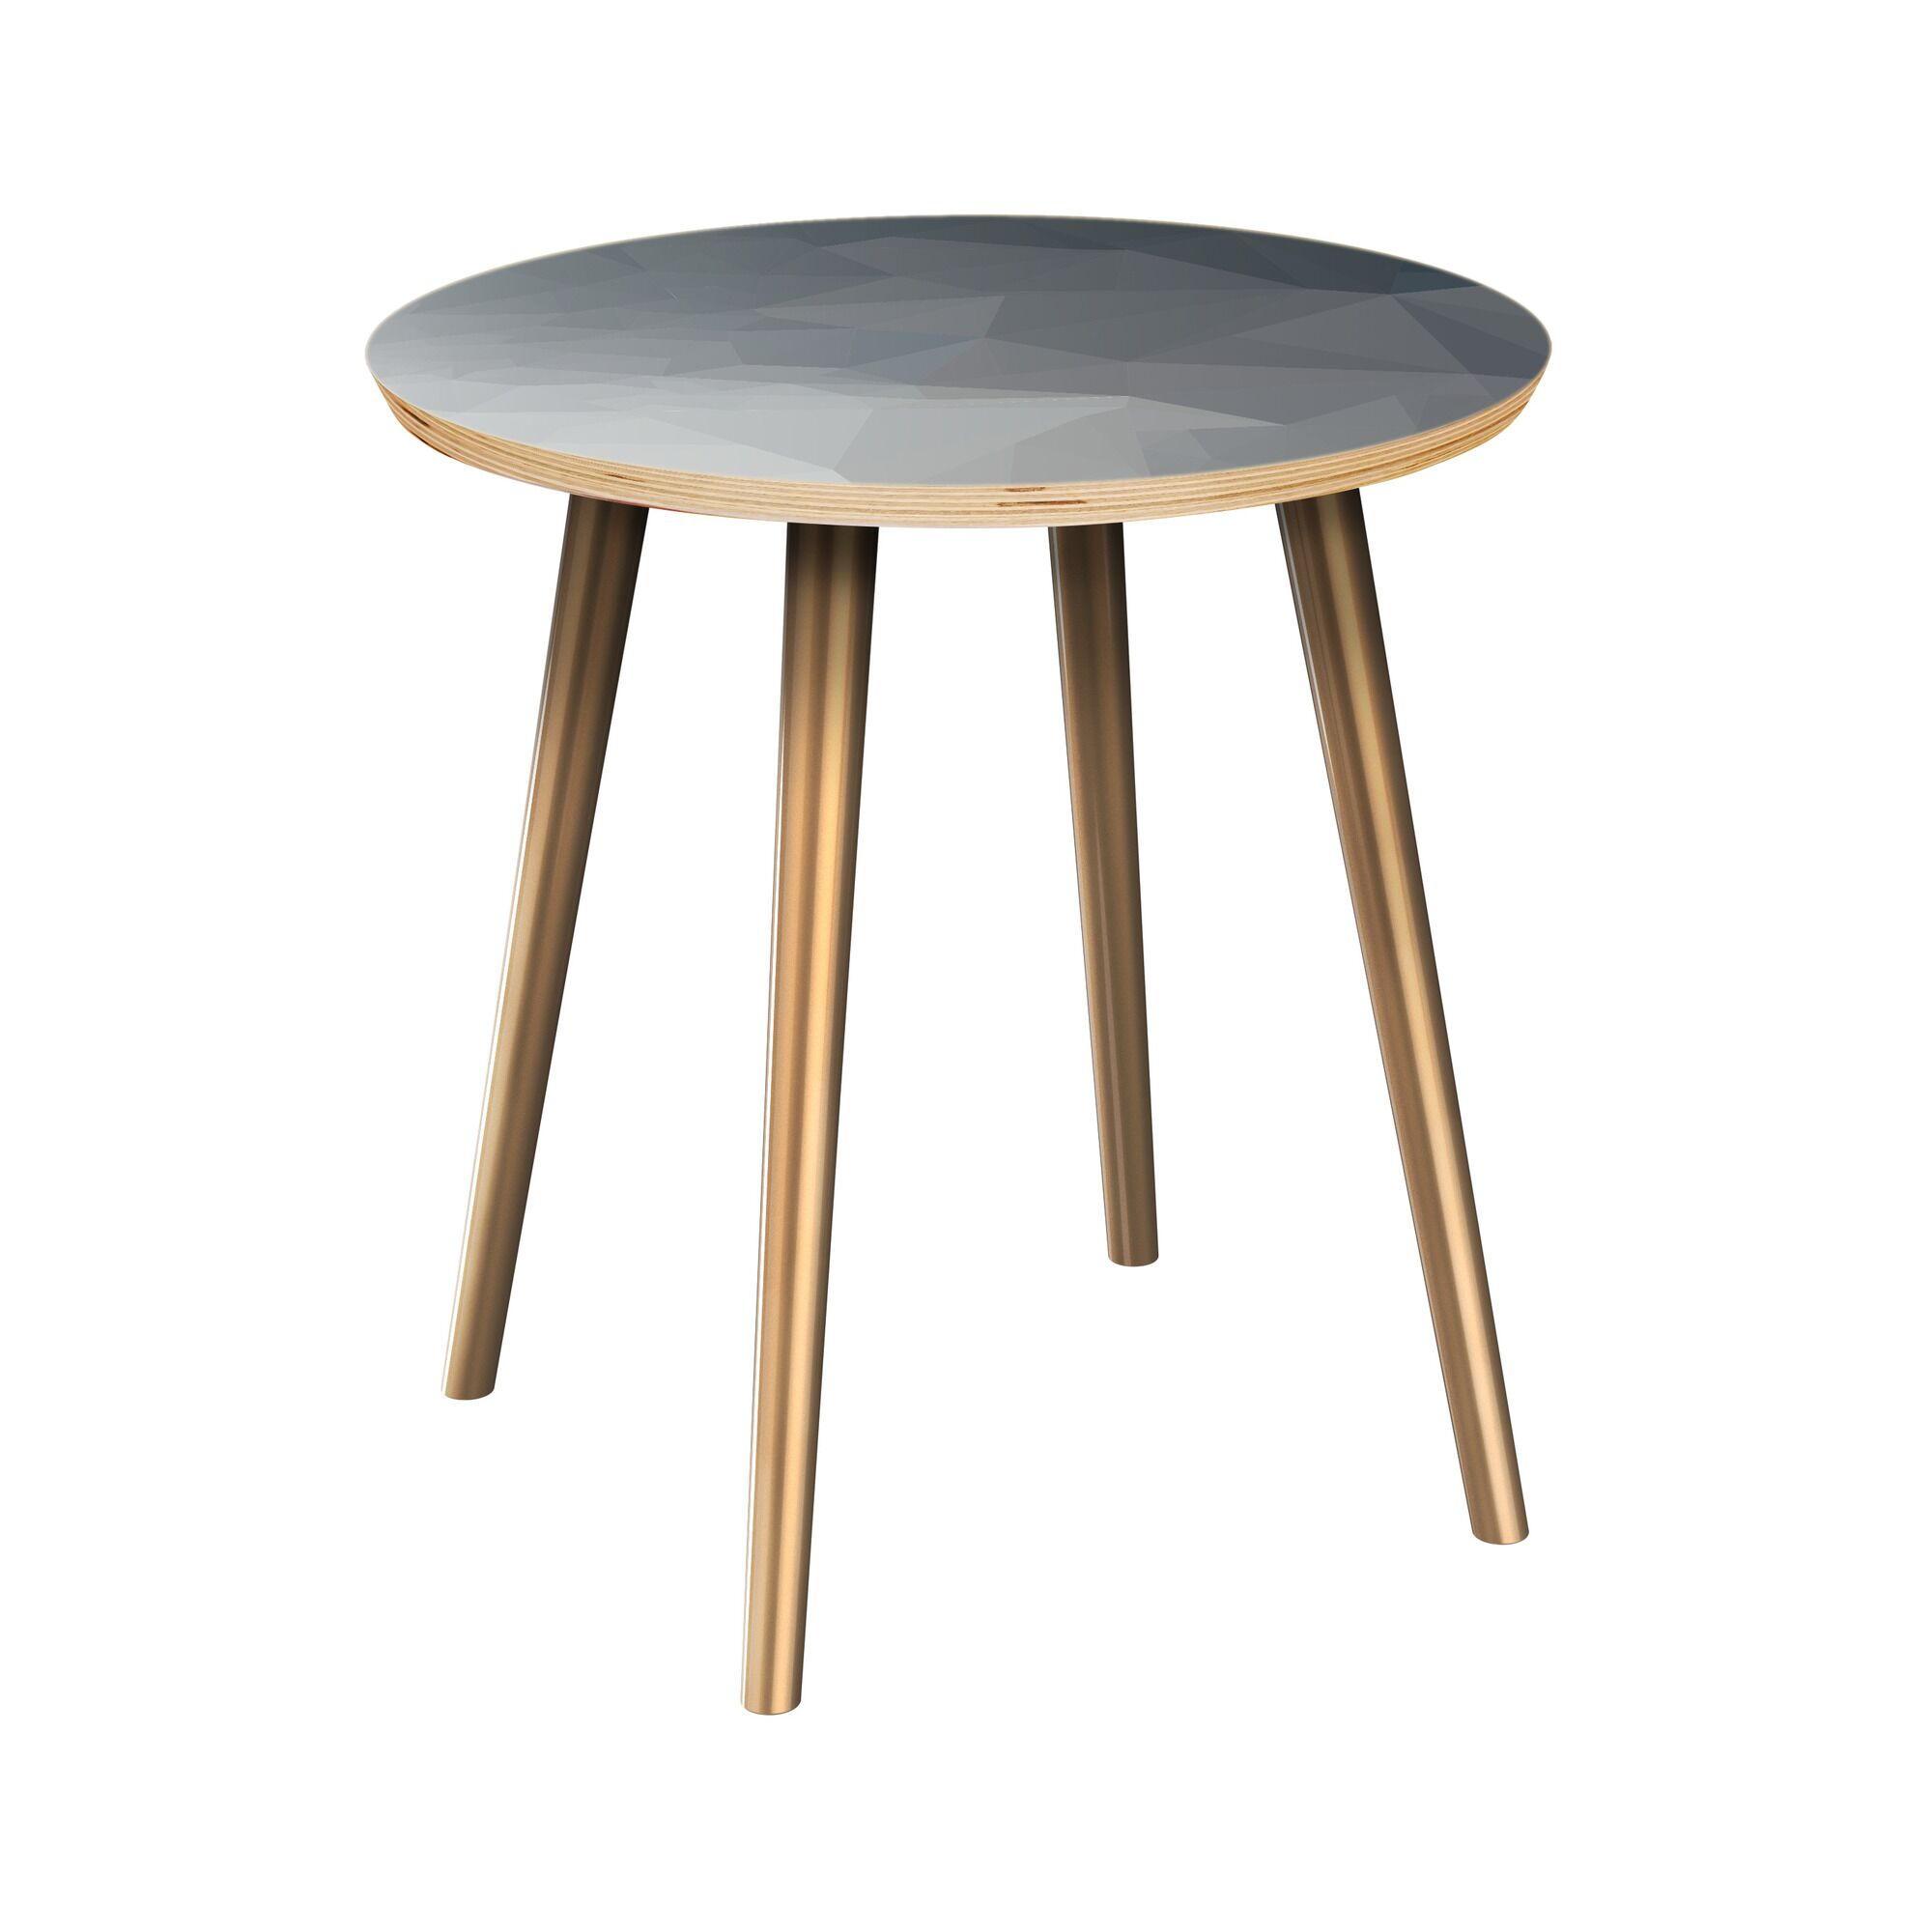 Rawley End Table Table Top Boarder Color: Natural, Table Base Color: Brass, Table Top Color: Blue